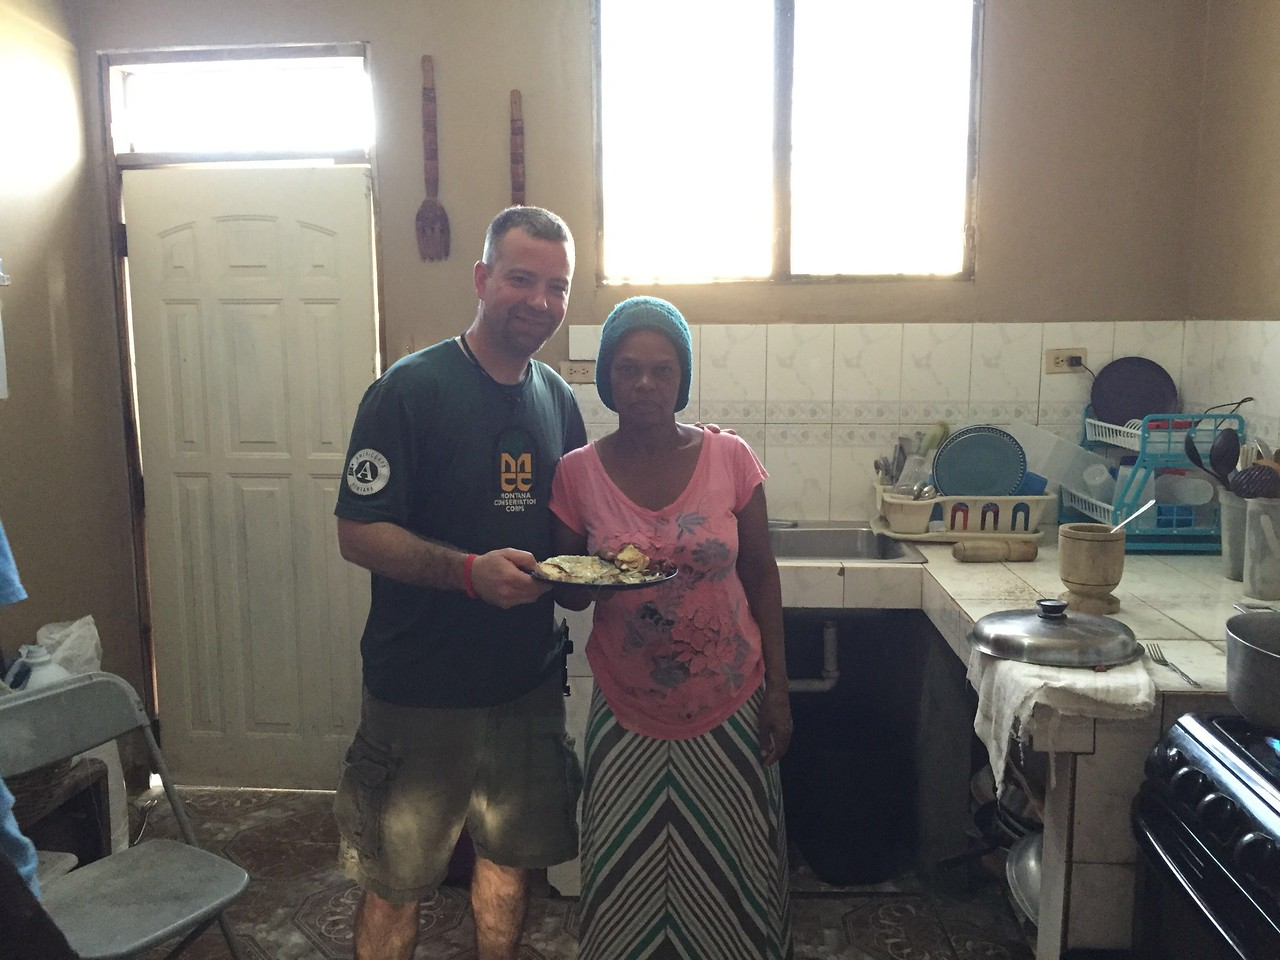 Day #8<br /> Our last morning at the team house.<br /> I made Mikula breakfast (again).<br /> I made her eggs, fried potatoes w/ green peppers and onion last year, and when I asked her if I could make her breakfast again, she put in the same order.